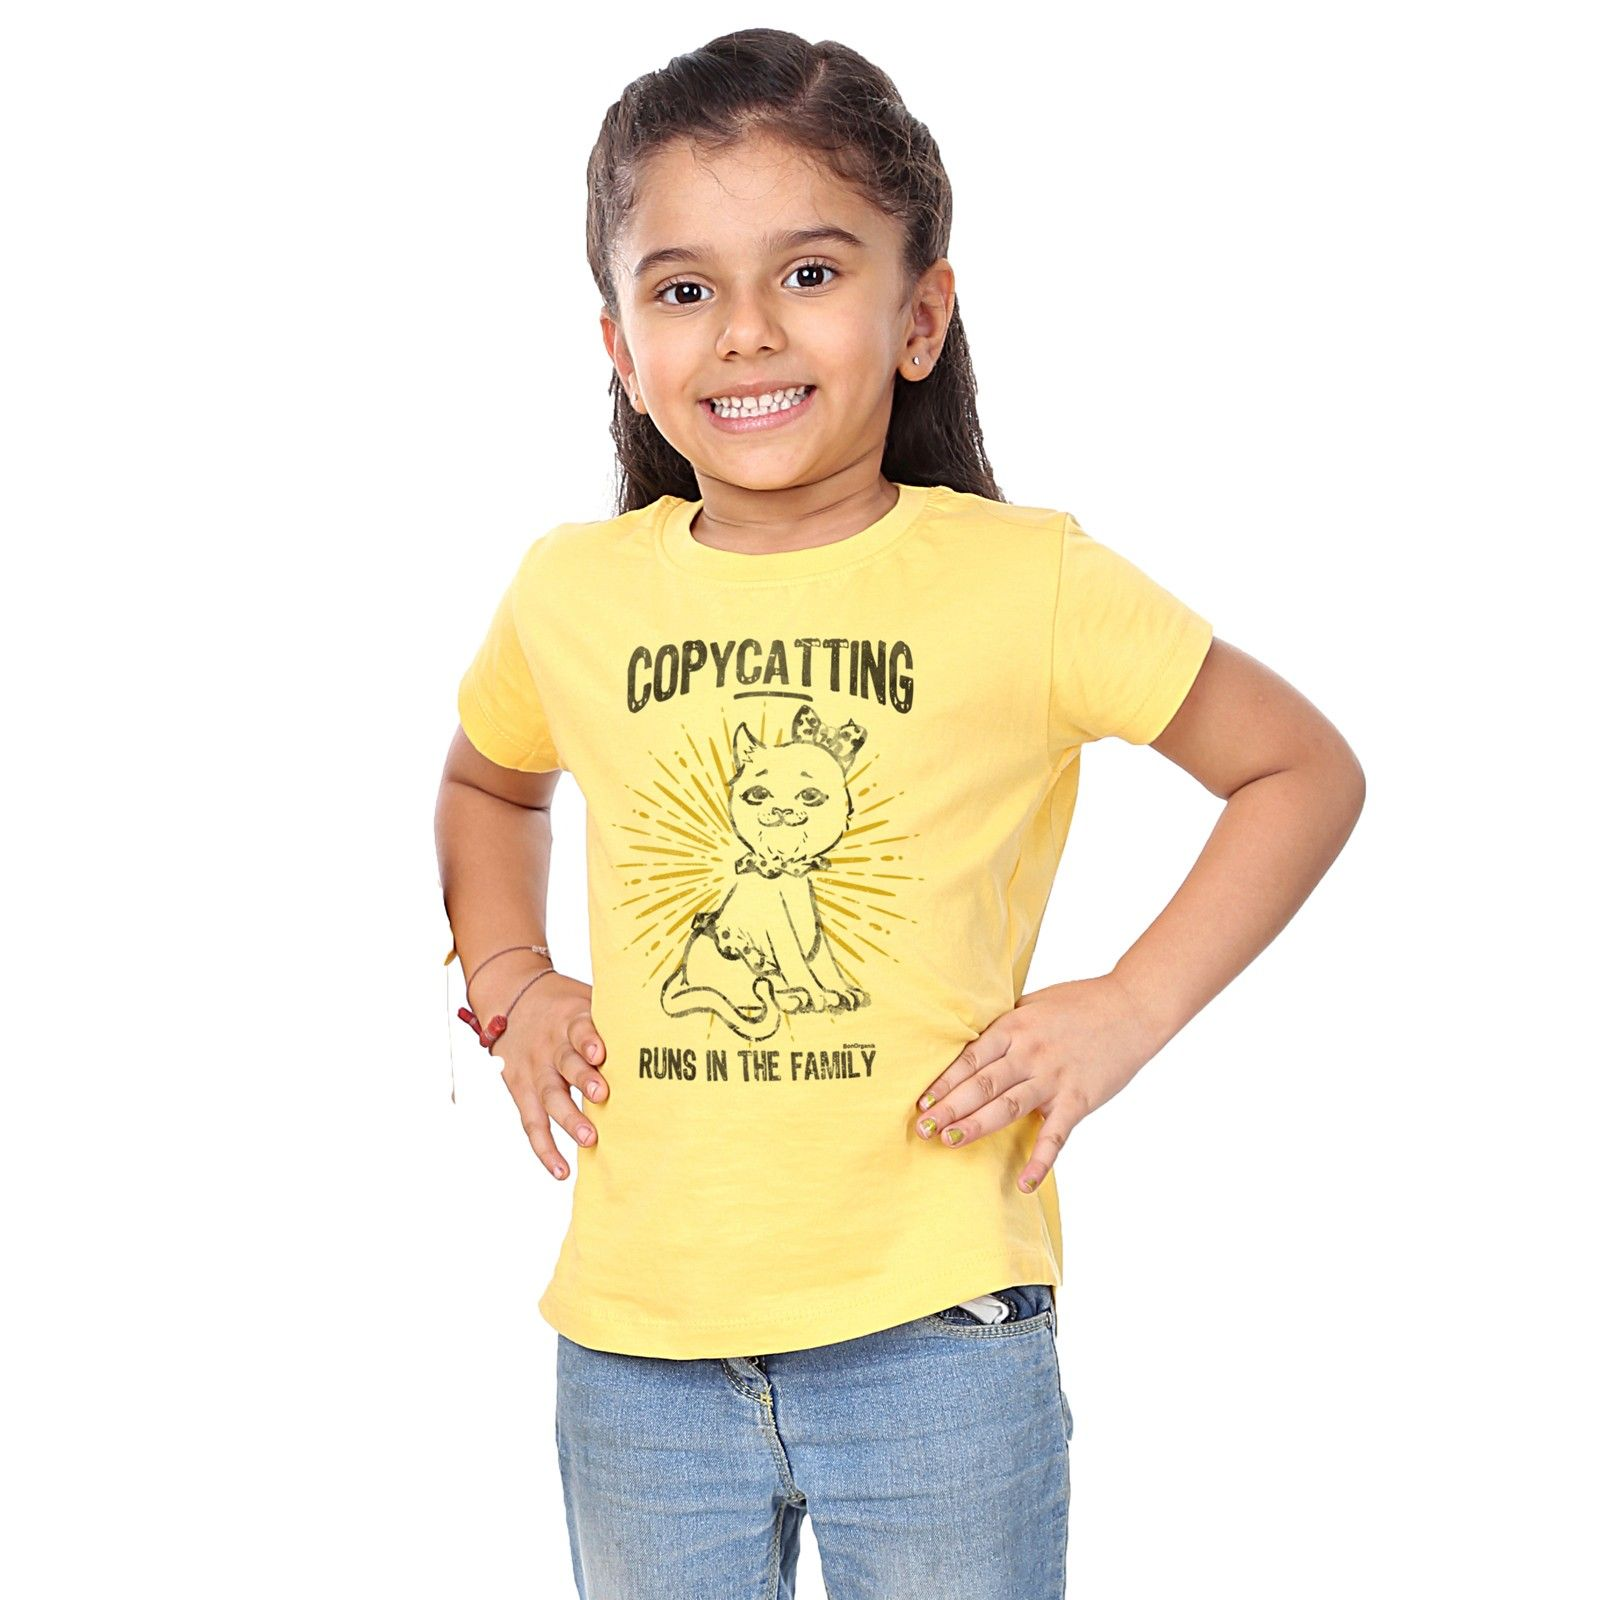 Girl's Copycatting Print Yellow T-shirt - BonOrganik